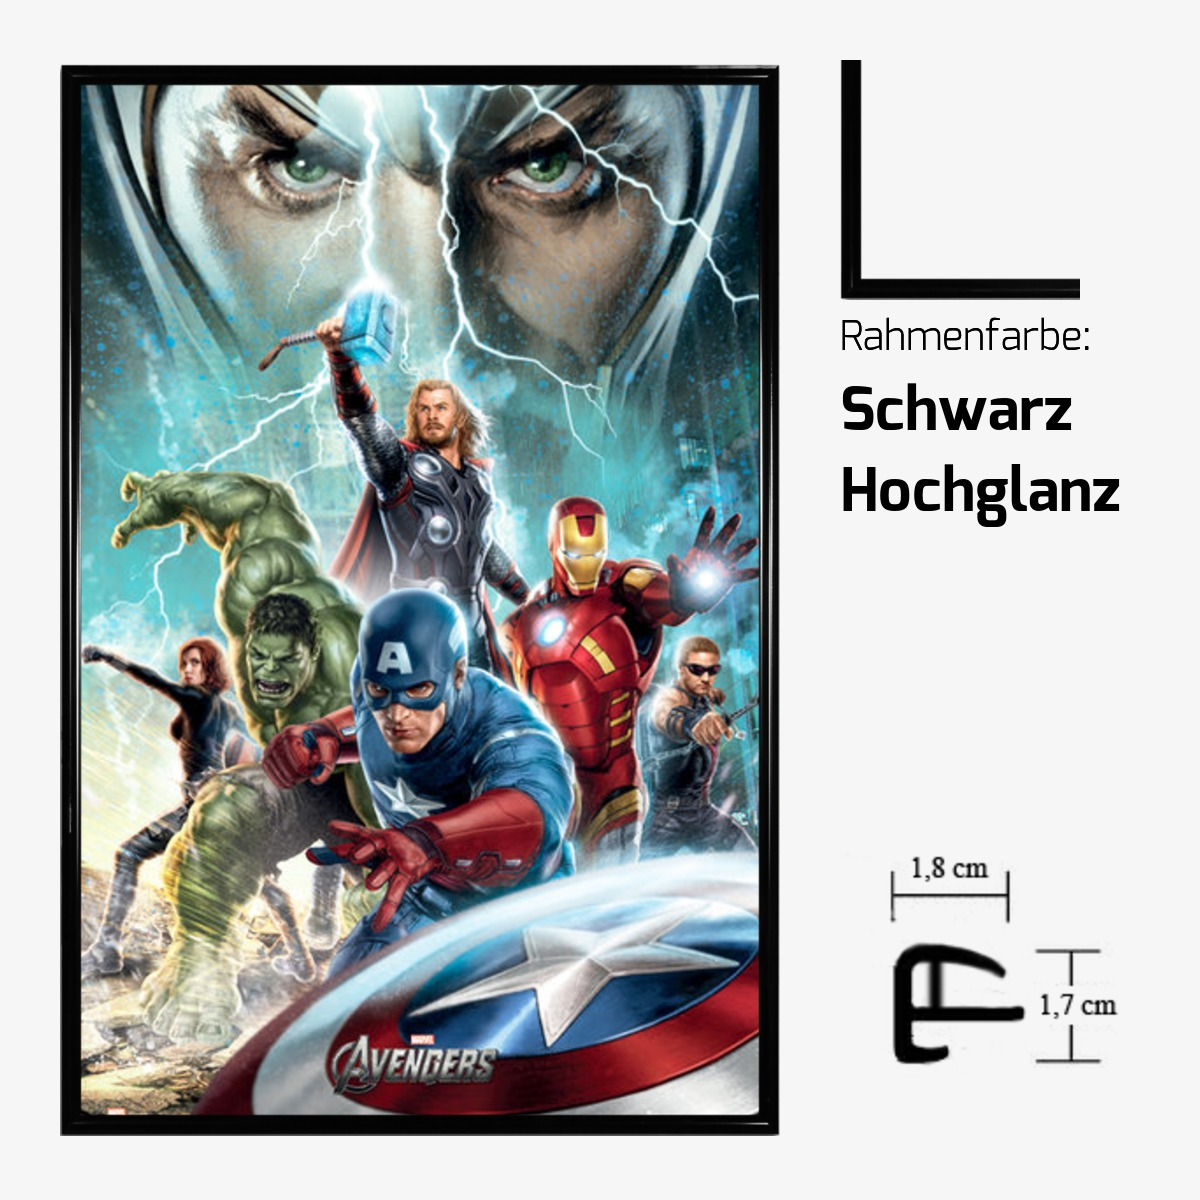 kunstdruck poster 61 x 91 5 cm marvel avengers optional bilderrahmen cliprahmen ebay. Black Bedroom Furniture Sets. Home Design Ideas